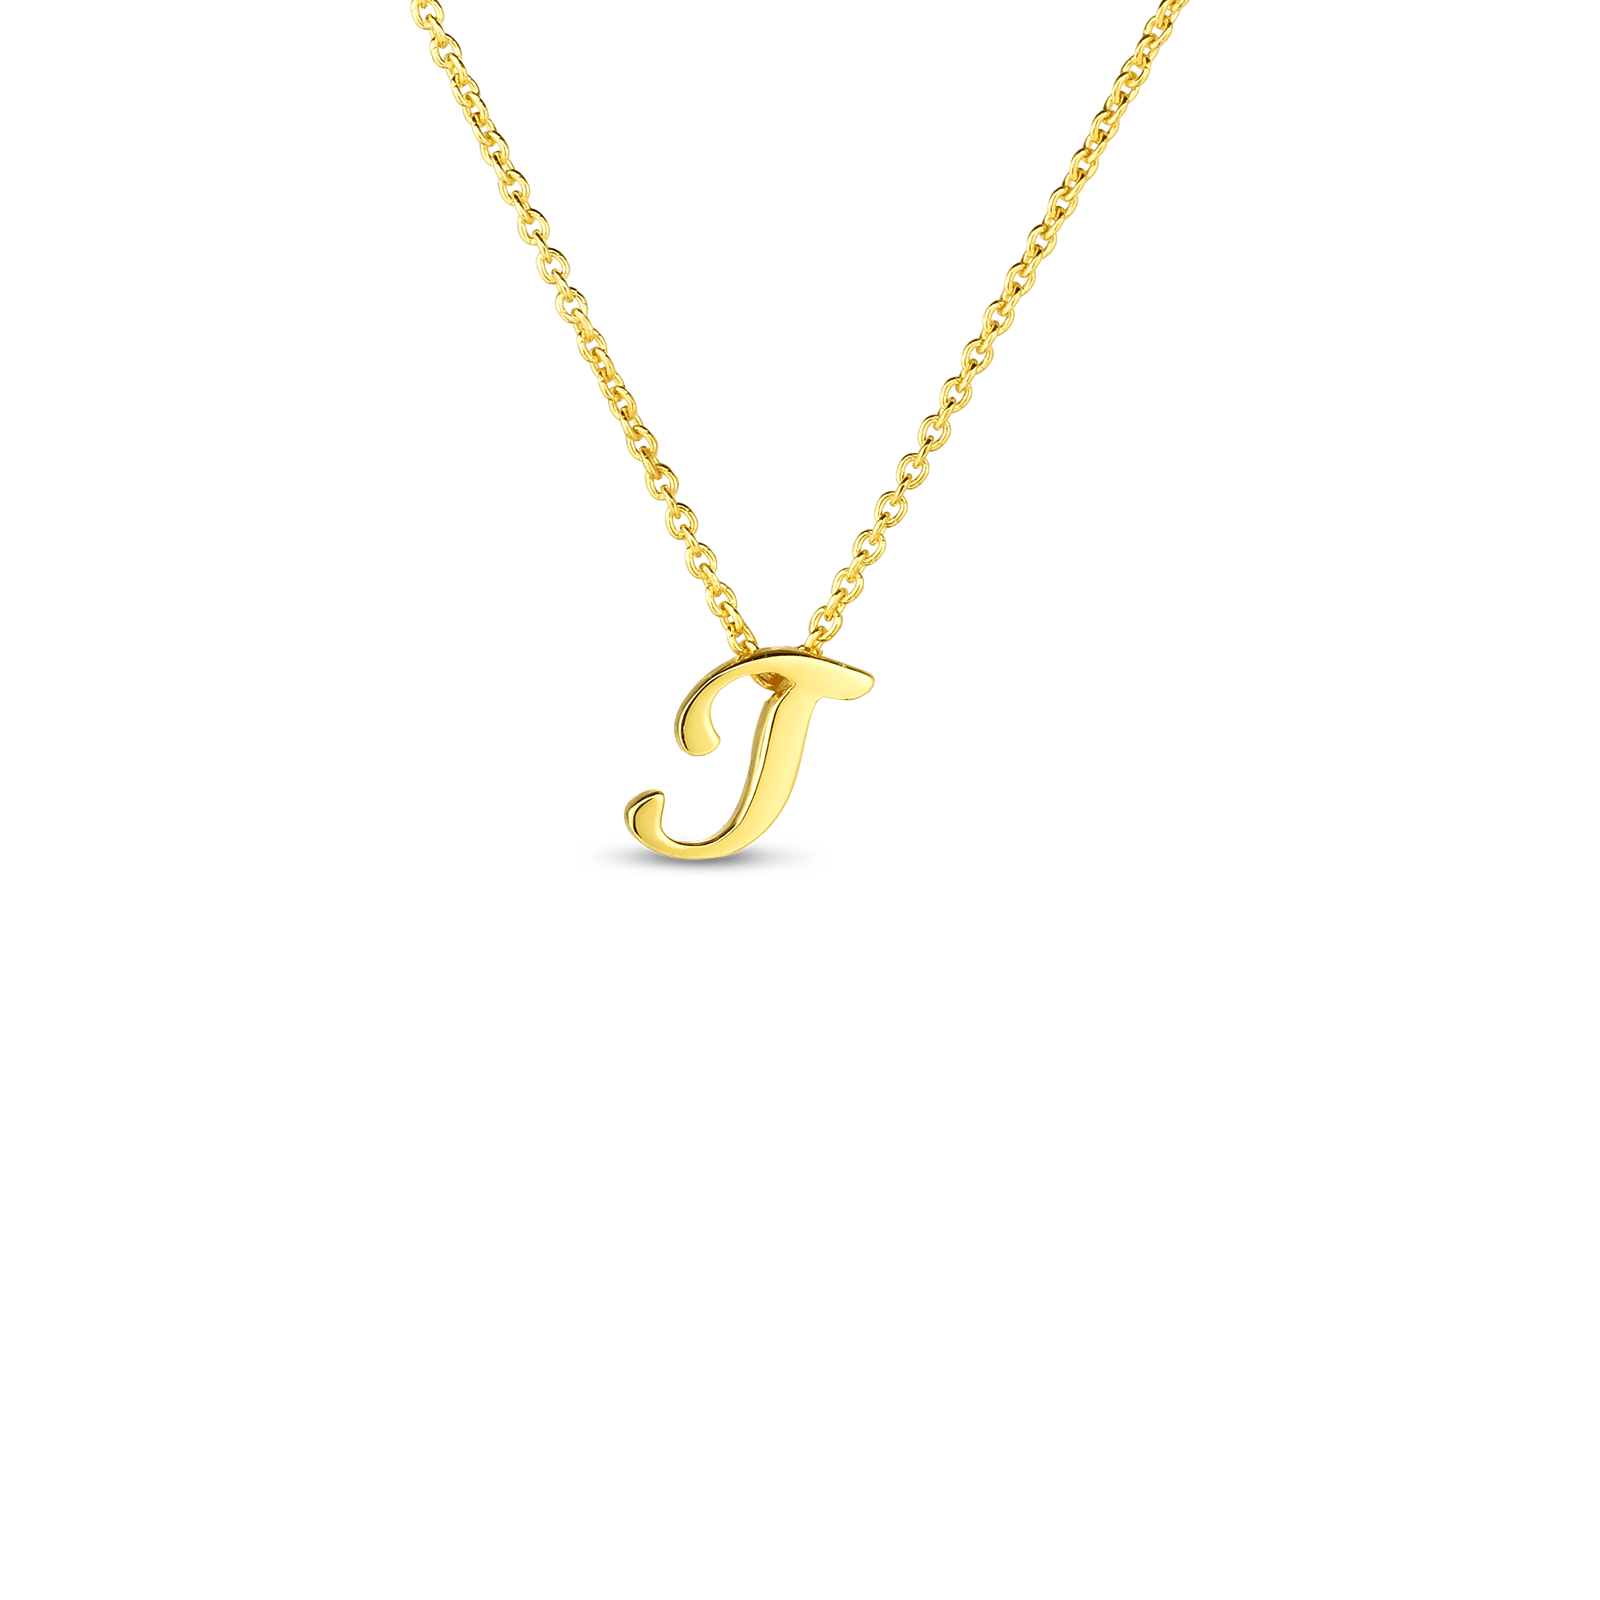 18k Small Script Initial 'T' Pendant On Chain